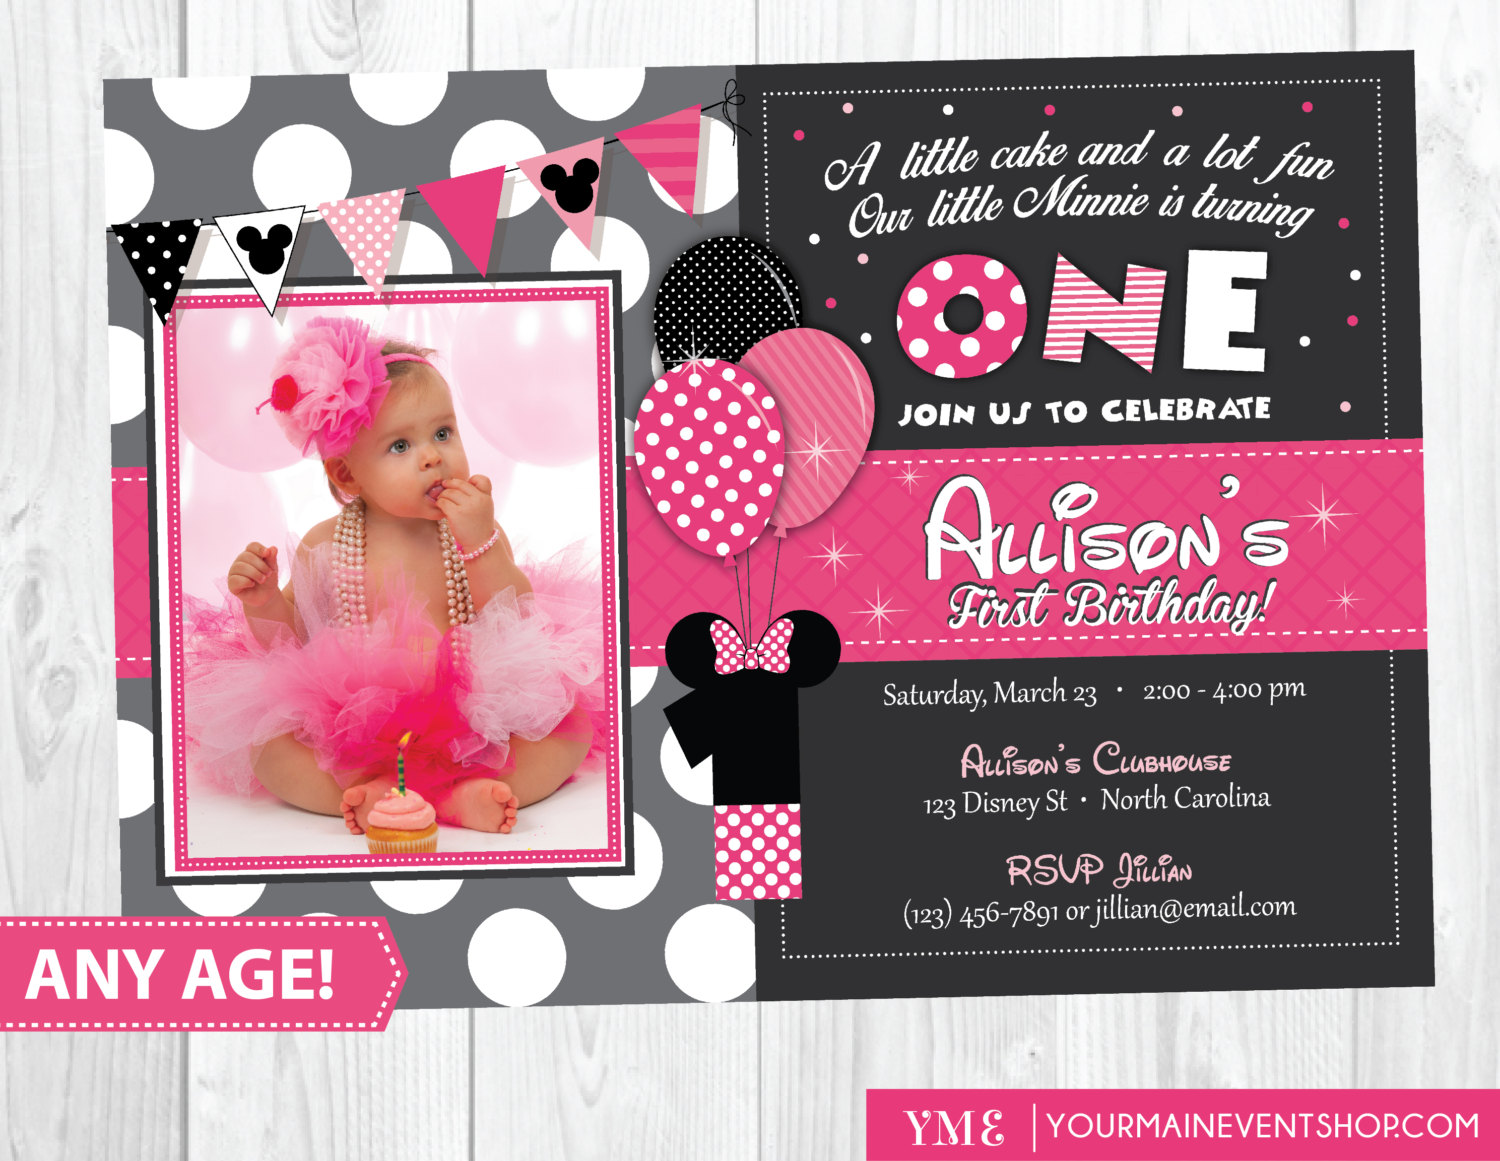 1st birthday minnie mouse photo invitations ; minnie-mouse-1st-birthday-invitations-with-some-beautification-for-your-Baby-Shower-Invitation-Templates-to-serve-delightful-environment-7